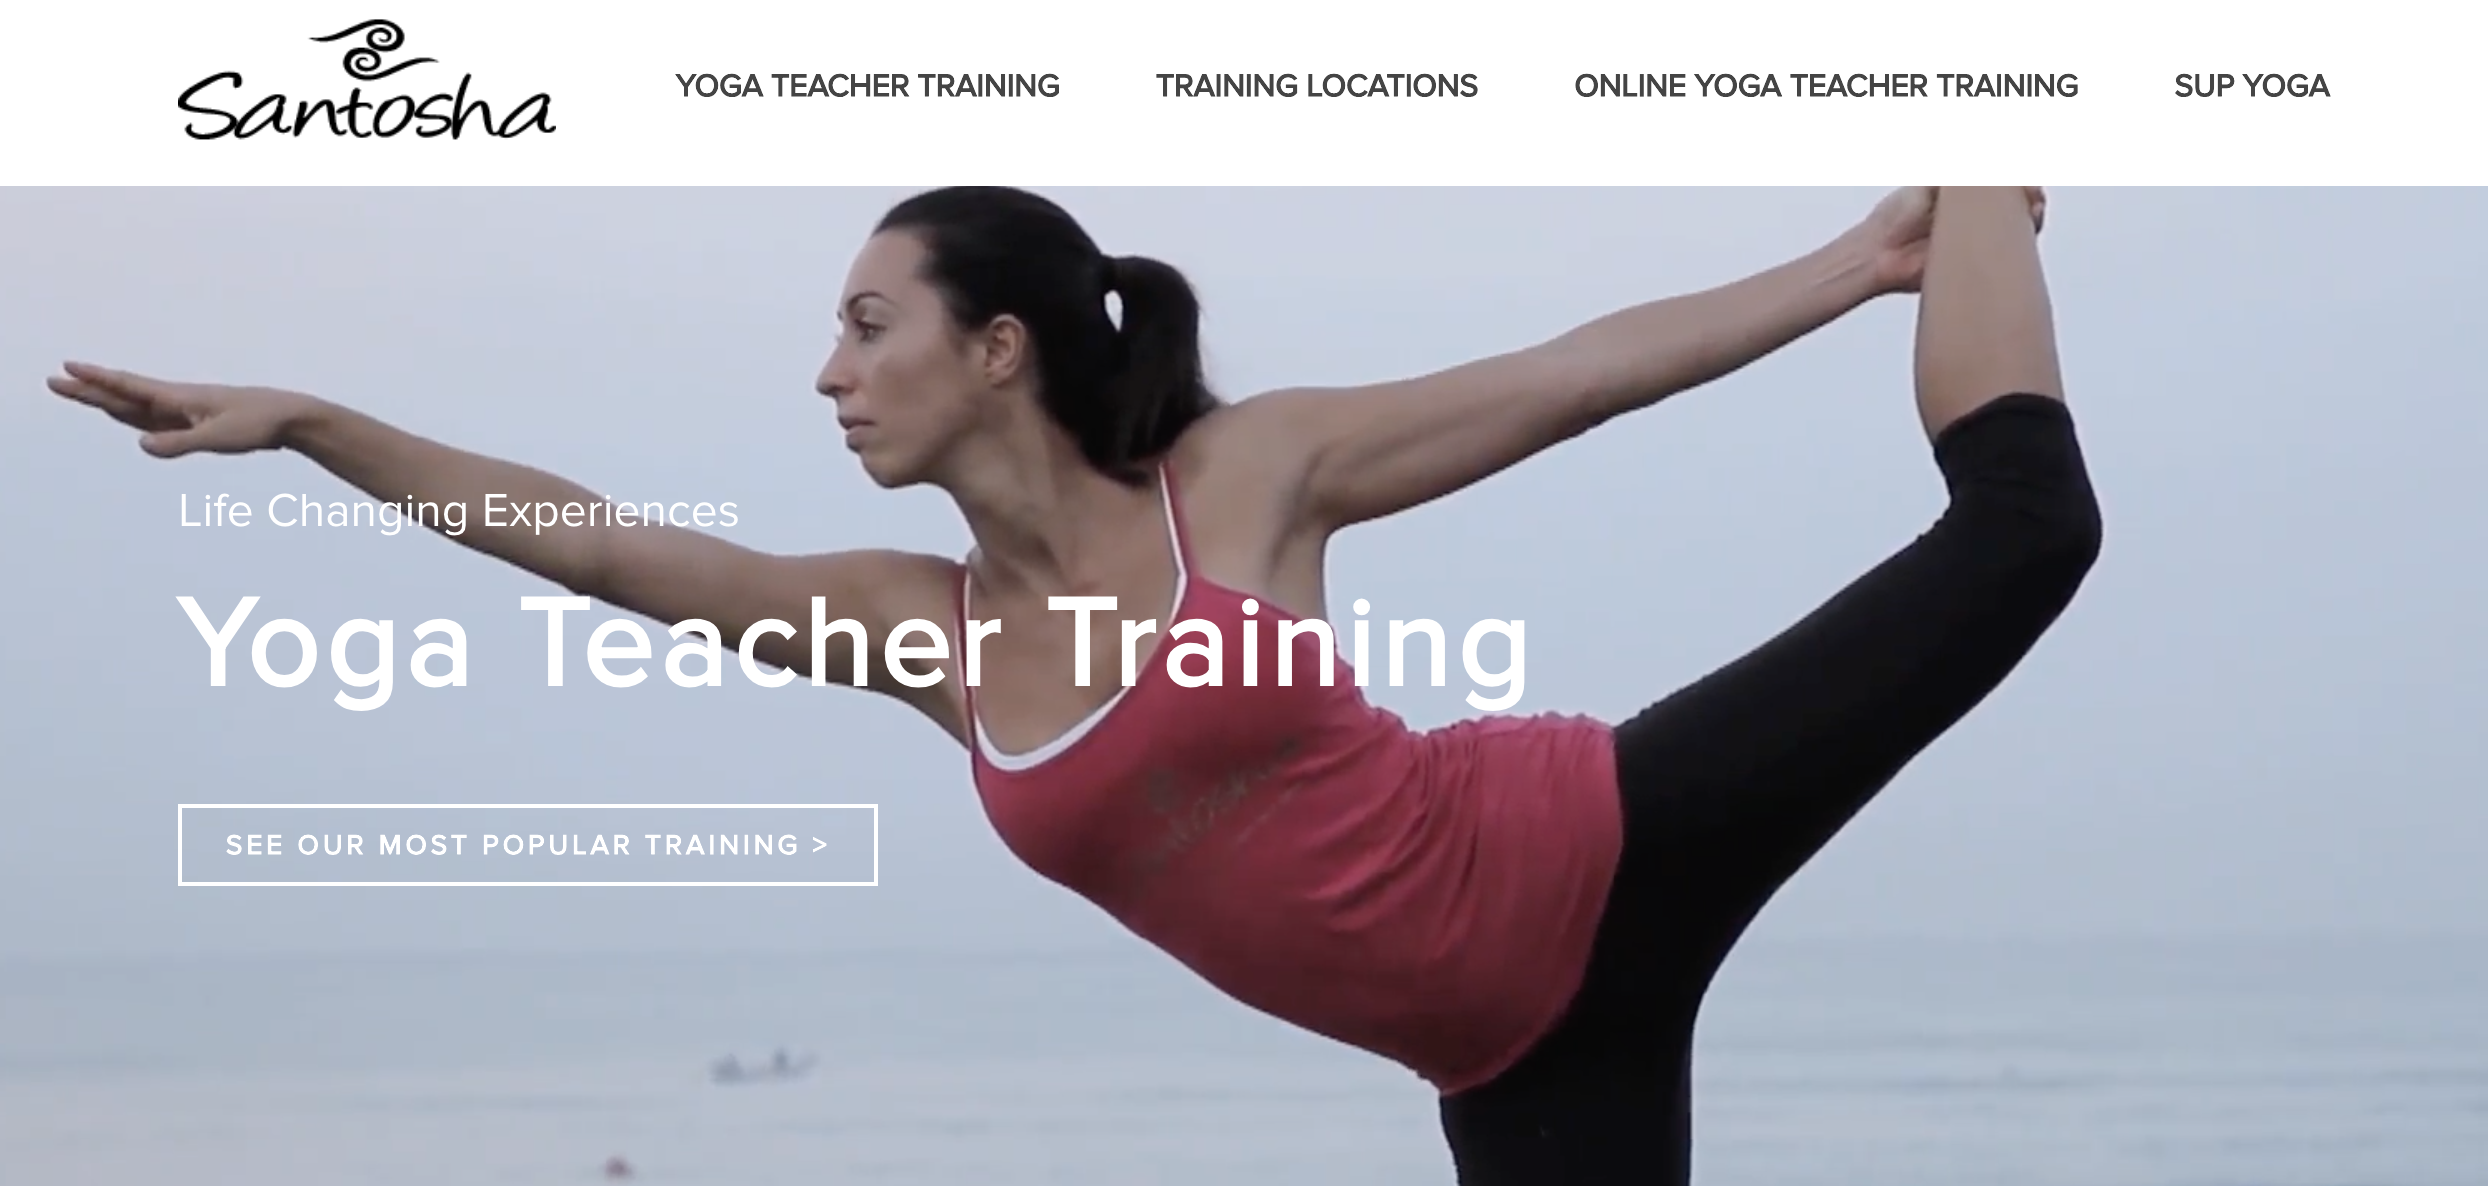 Yoga Teacher Training Online The Future By Santosha Yoga Medium